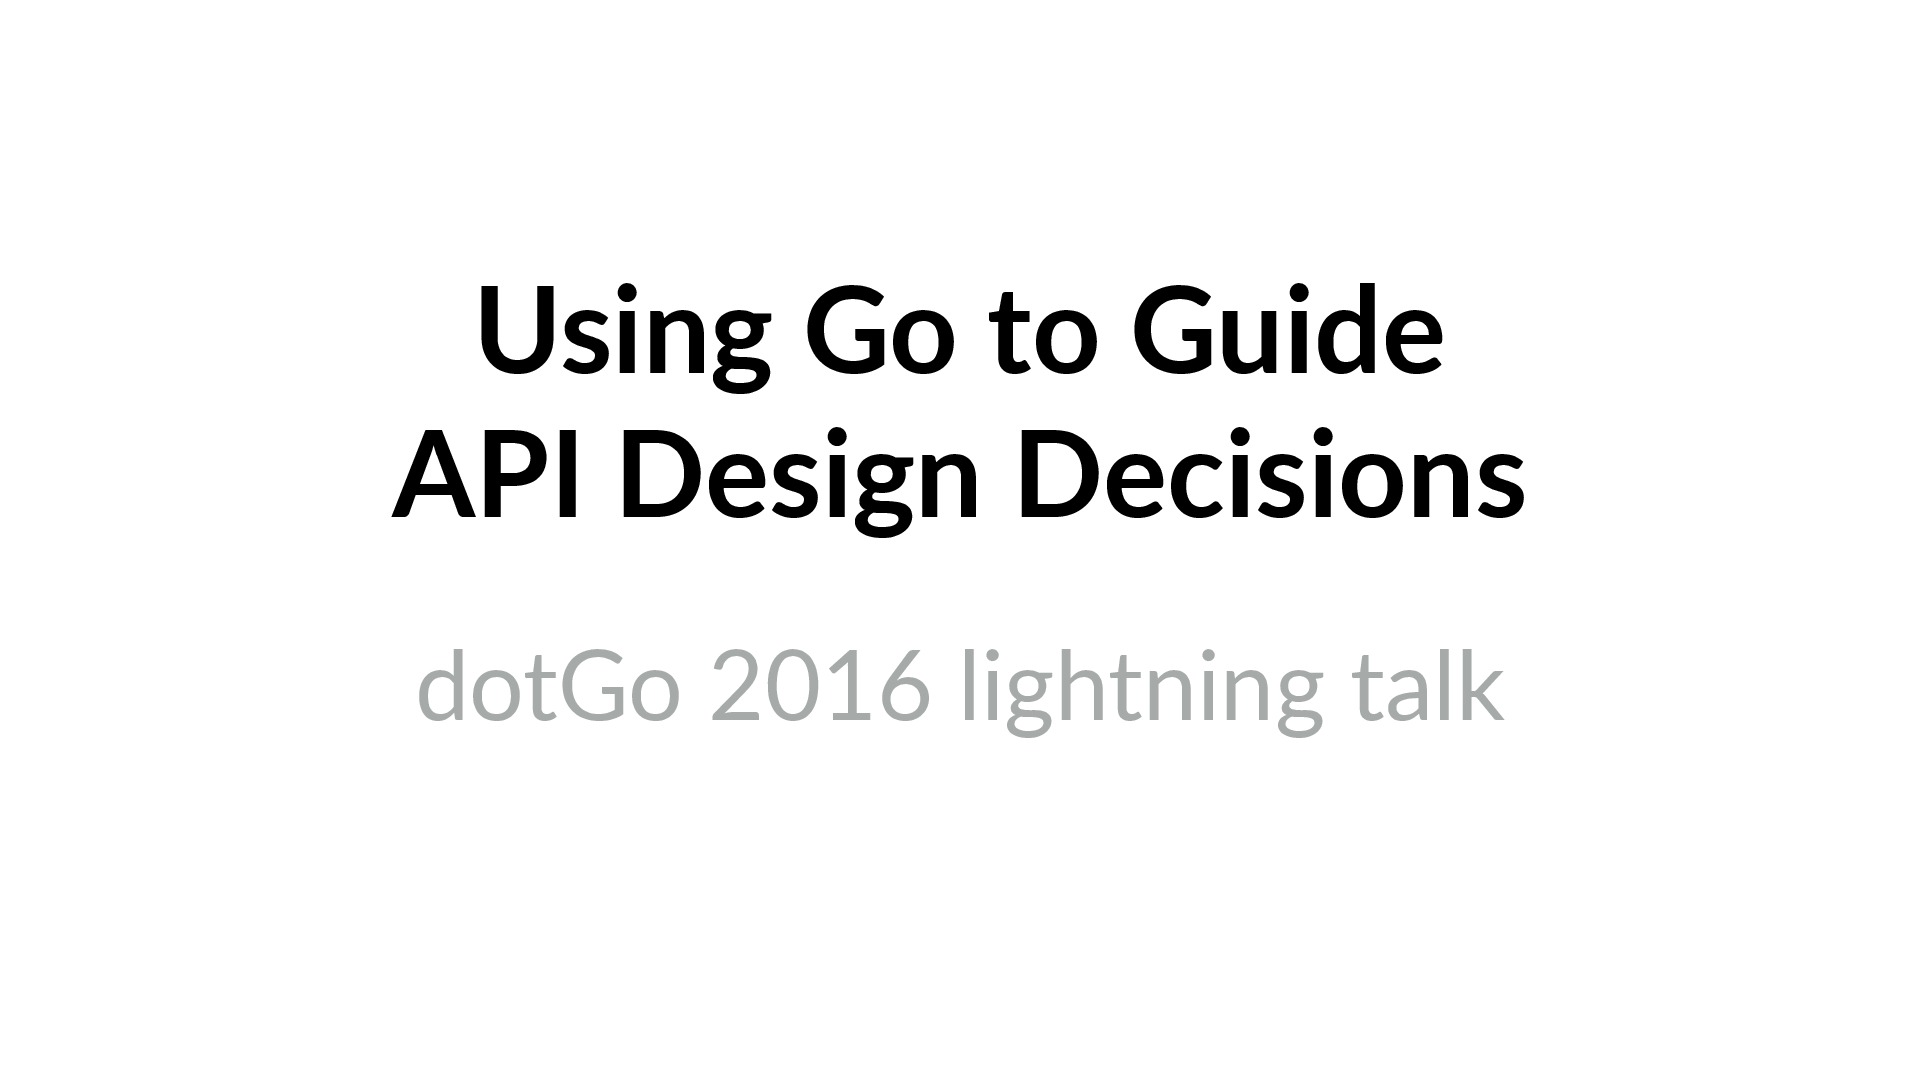 Using Go to Guide API Design Decisions (dotGo 2016)